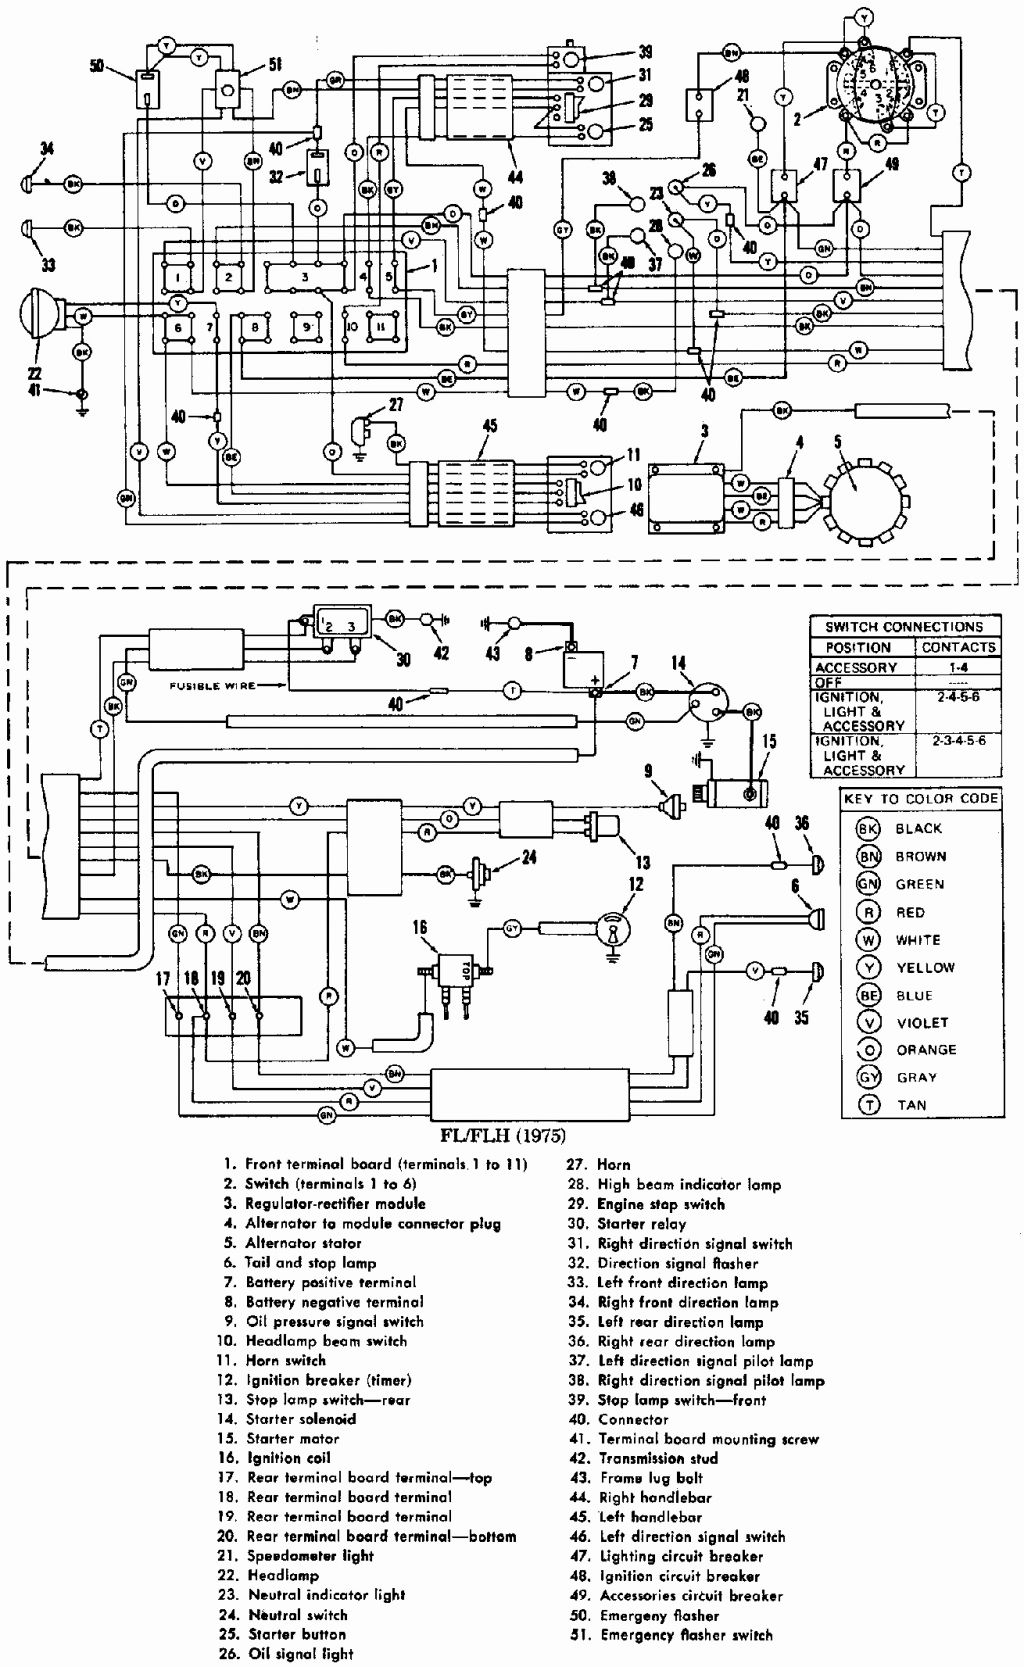 Harman Kardon Stereo Speaker Wiring Diagram on